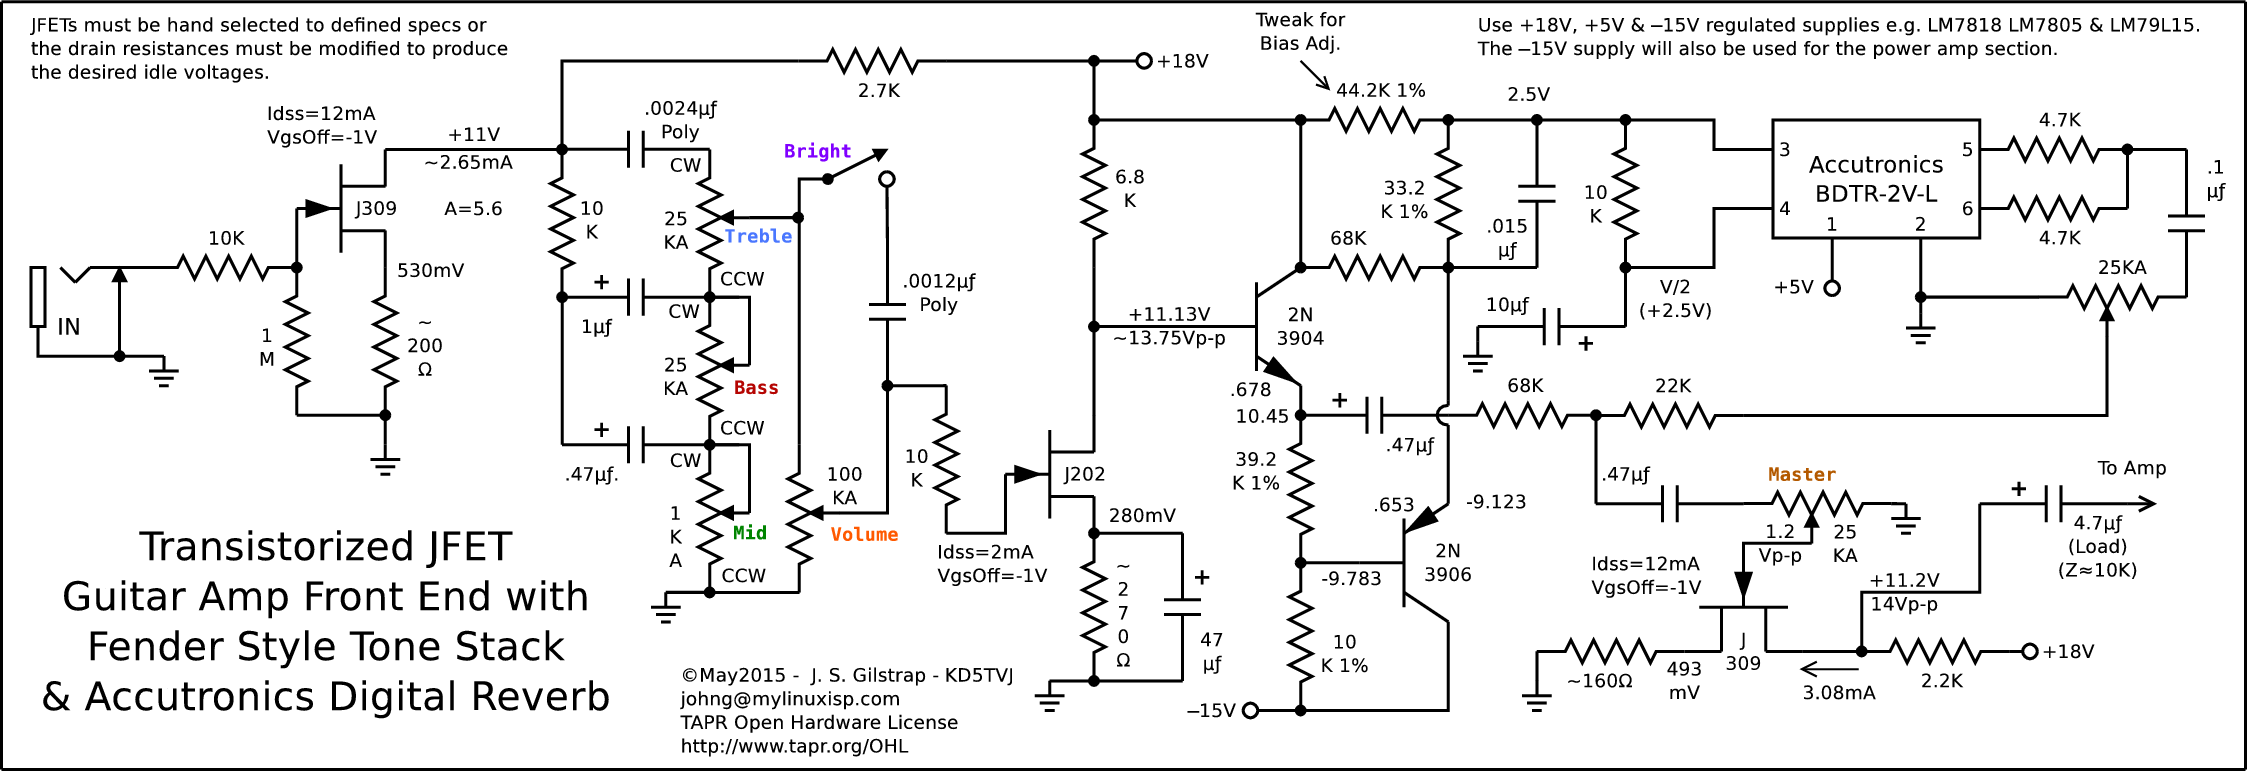 6bq5 Tube Schematic